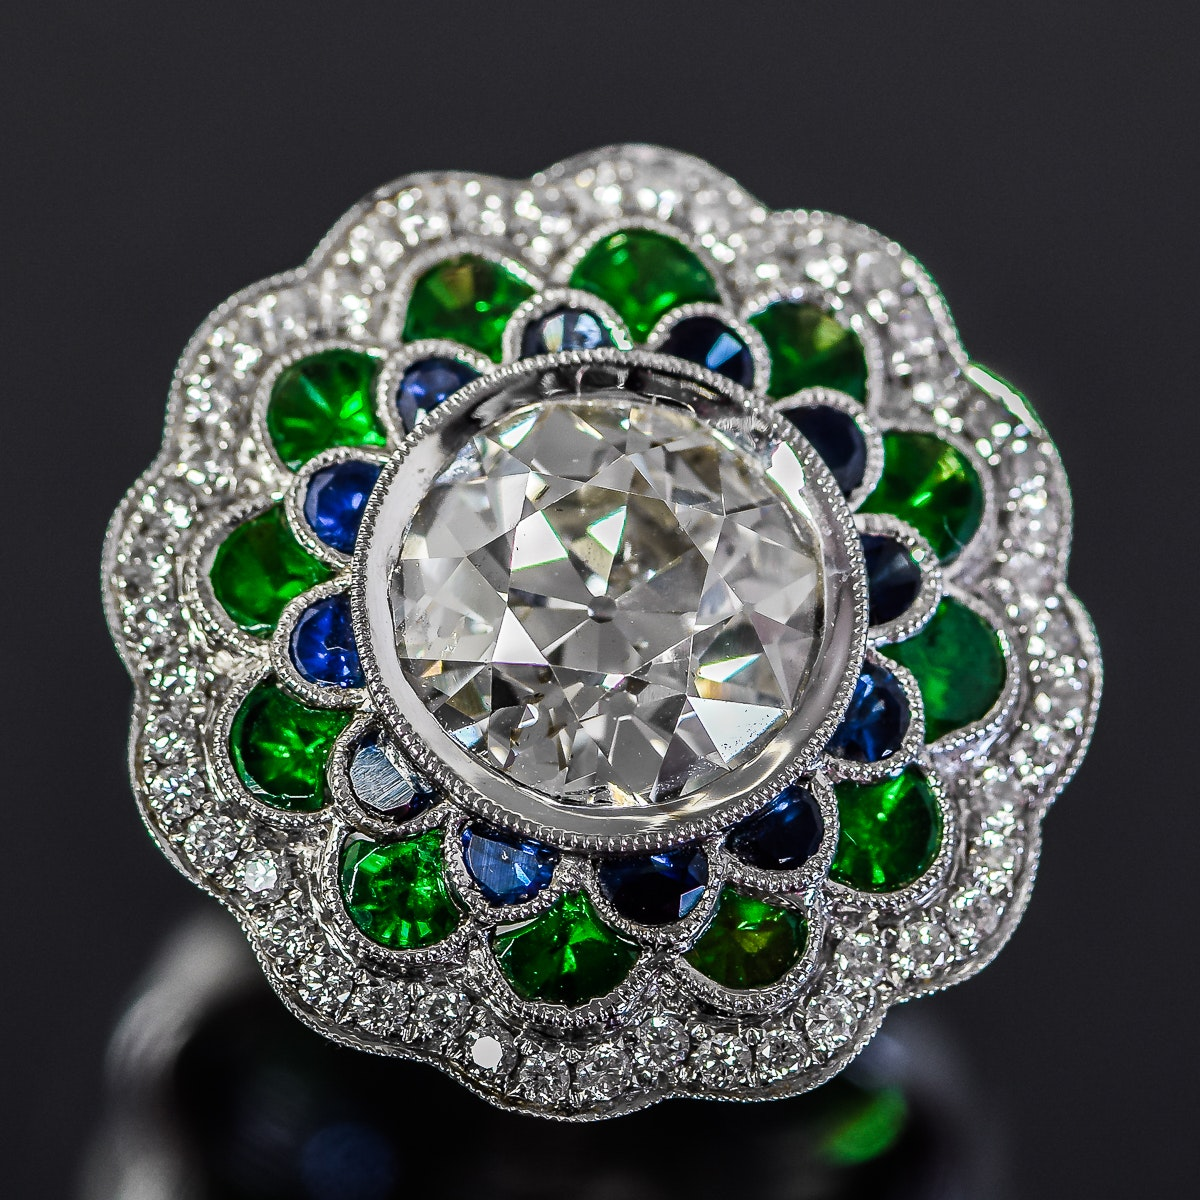 18K White Gold, 4.56 CTW Diamond, Emerald, and Sapphire Cocktail Ring